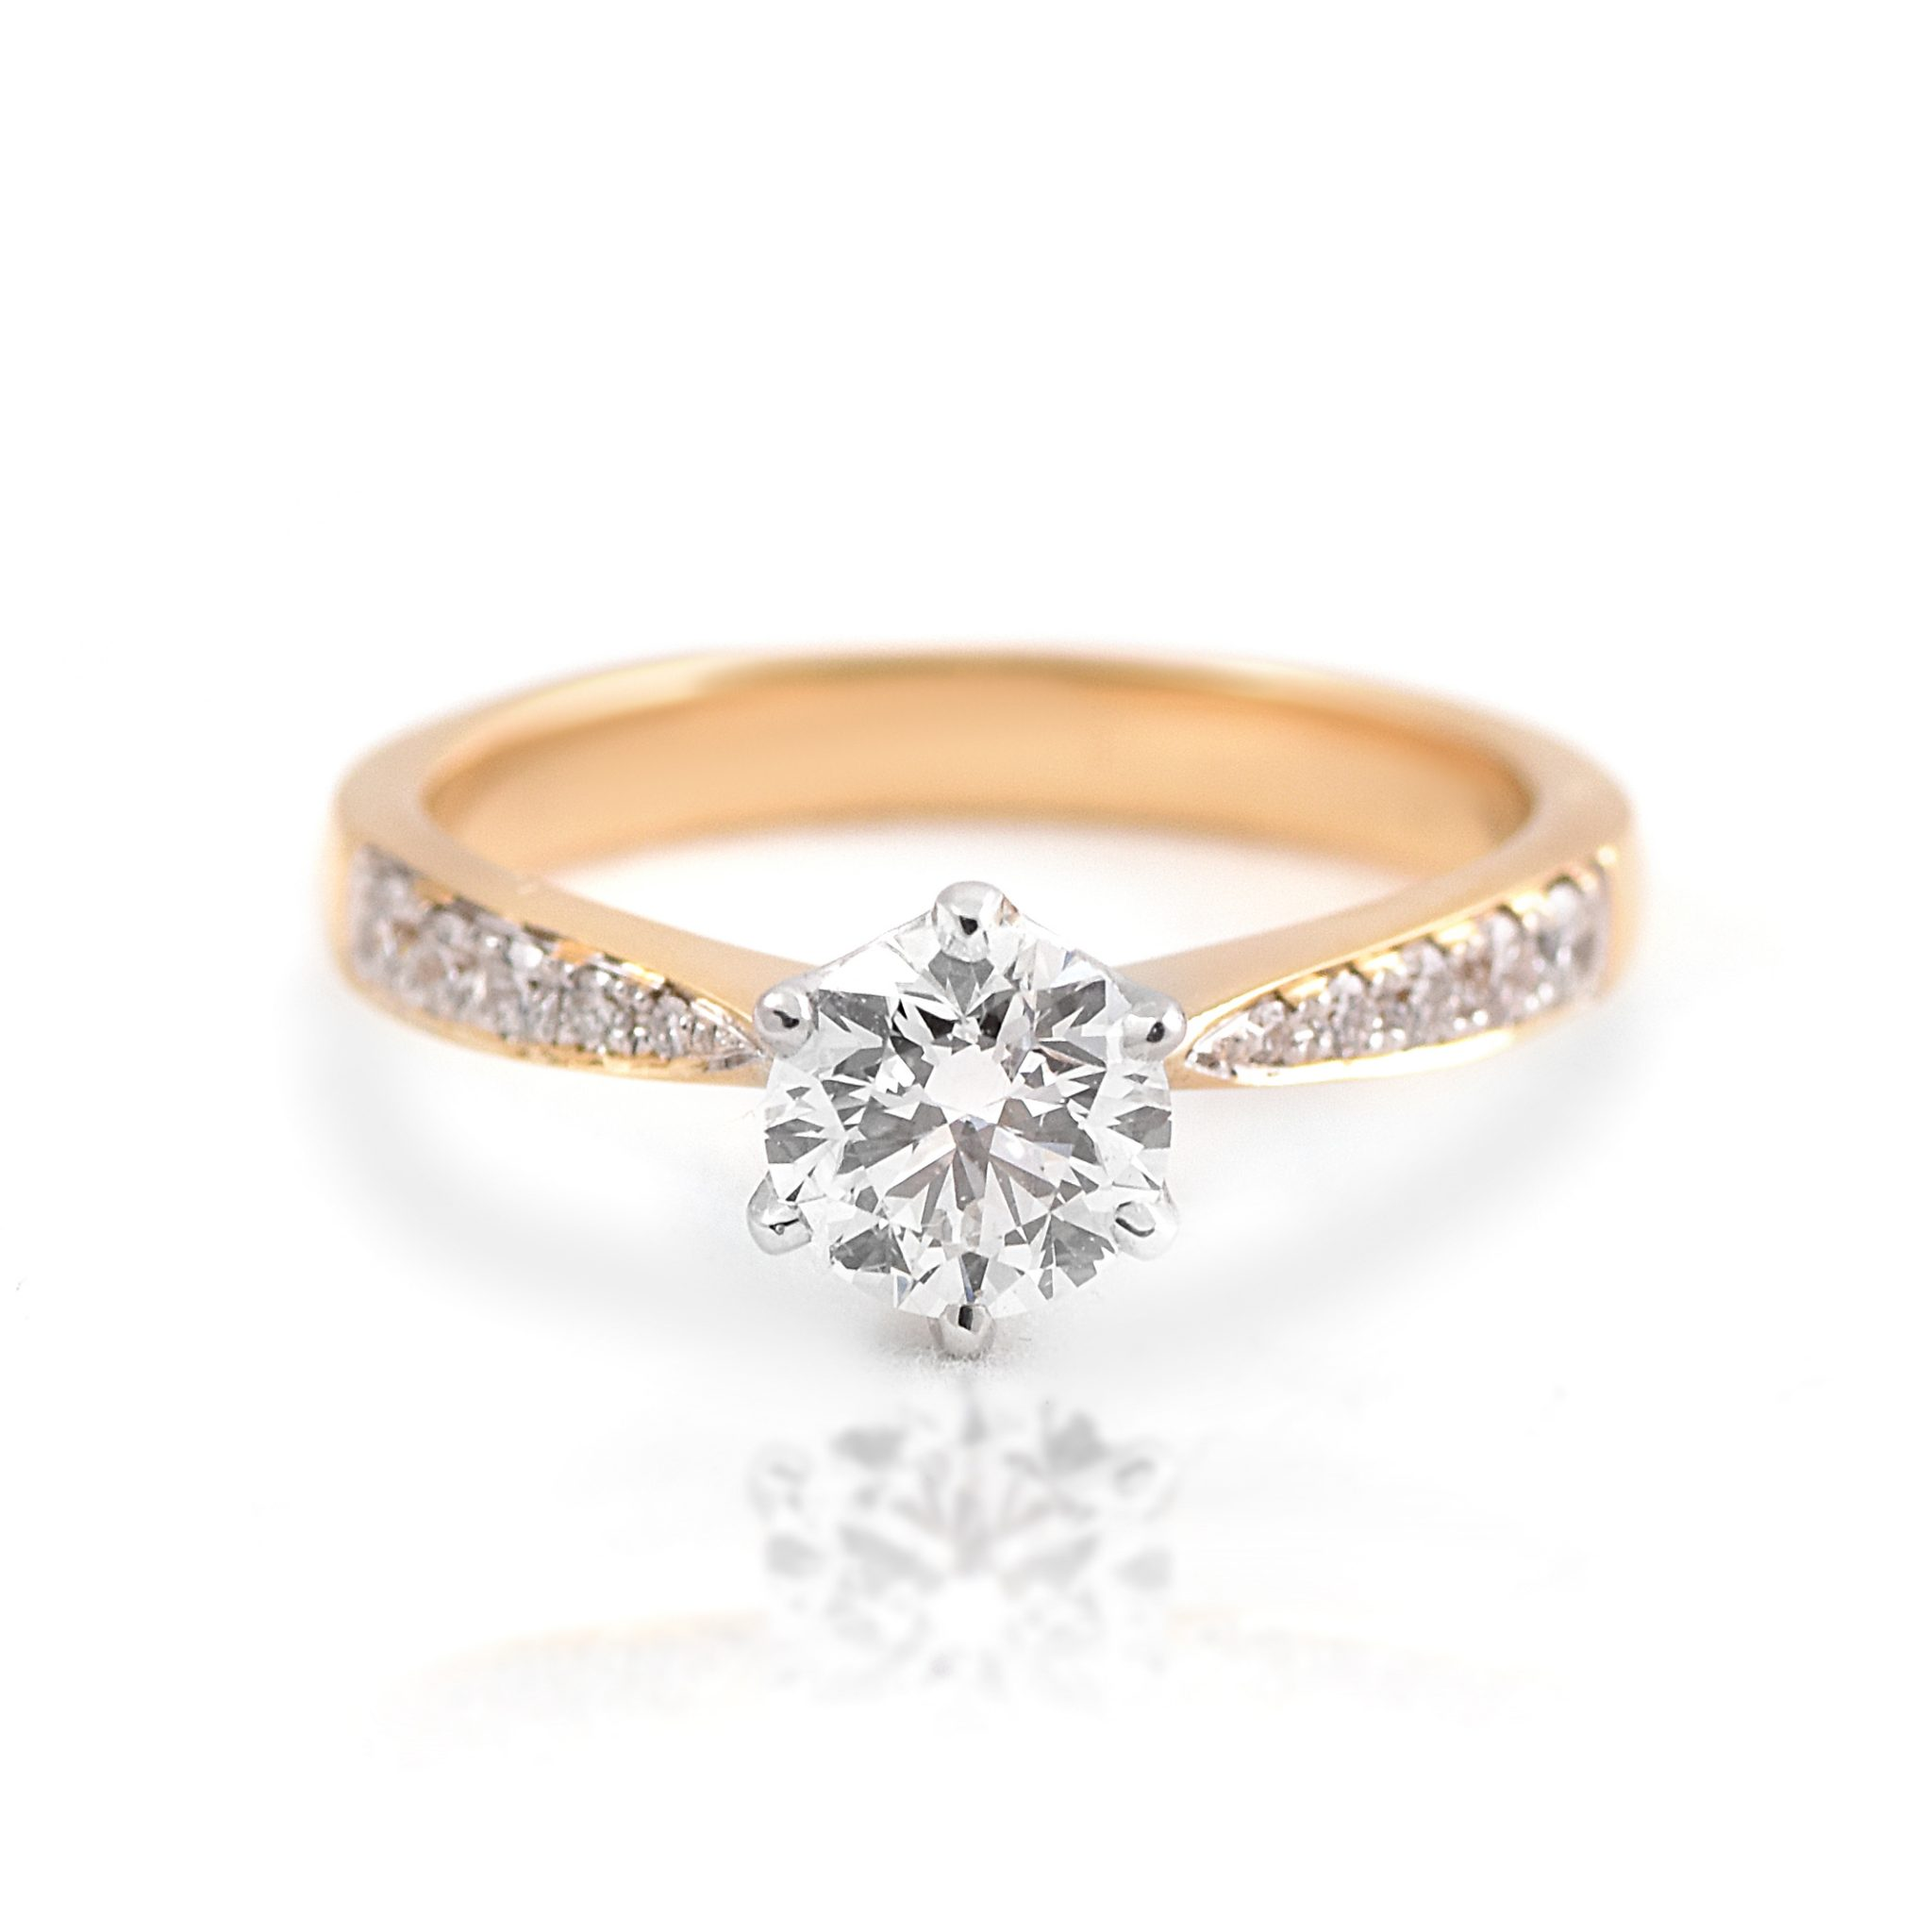 Diamonds and Pearls Perth • Diamond Engagement Rings, Pearl Jewellery